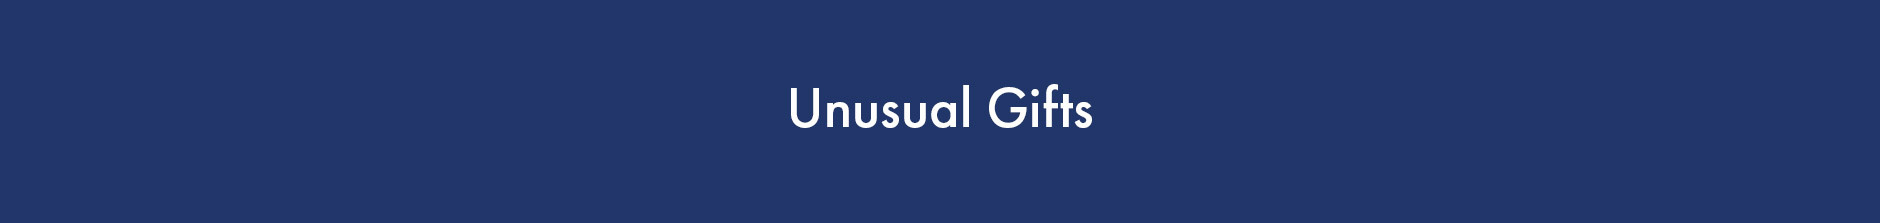 Unusual Gifts